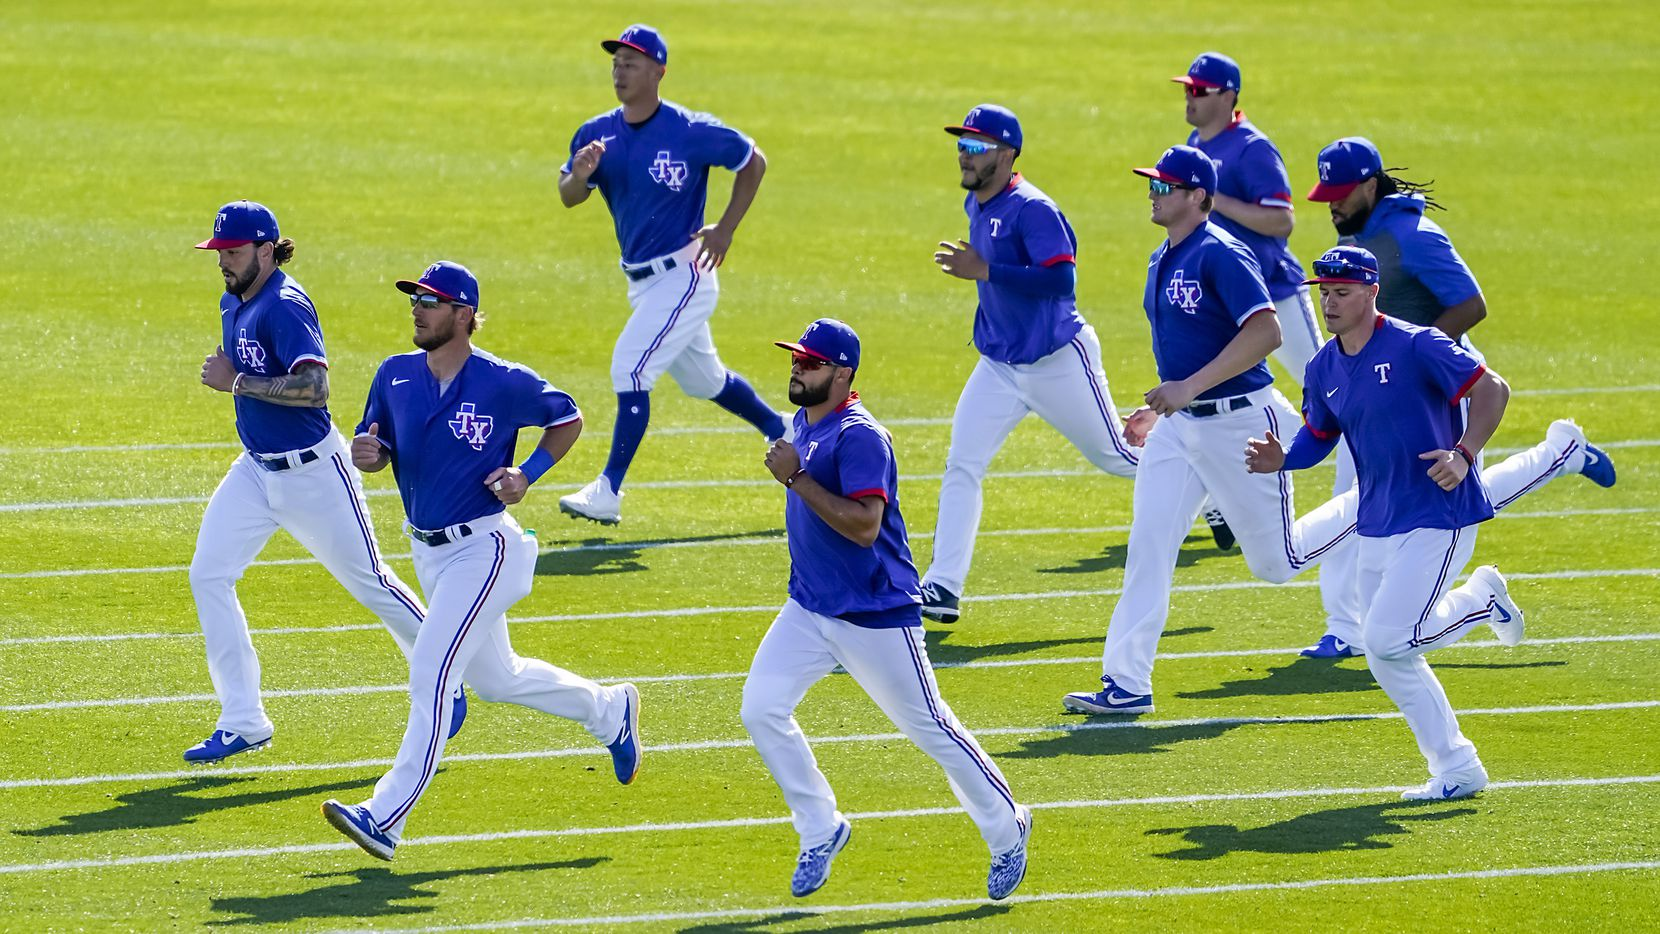 Texas Rangers position players run on a practice field during a spring training workout at the team's training facility on Wednesday, Feb. 19, 2020, in Surprise, Ariz. Pictured (from left to right) are catcher Blake Swihart, catcher Jeff Mathis, outfielder Rob Refsnyder (top), infielder Isiah Kiner-Falefa (bottom), infielder Anderson Tejeda, catcher Sam Huff, infielder Nick Solak (top), outfielder Scott Heineman (bottom) and outfielder Henry Ramos.